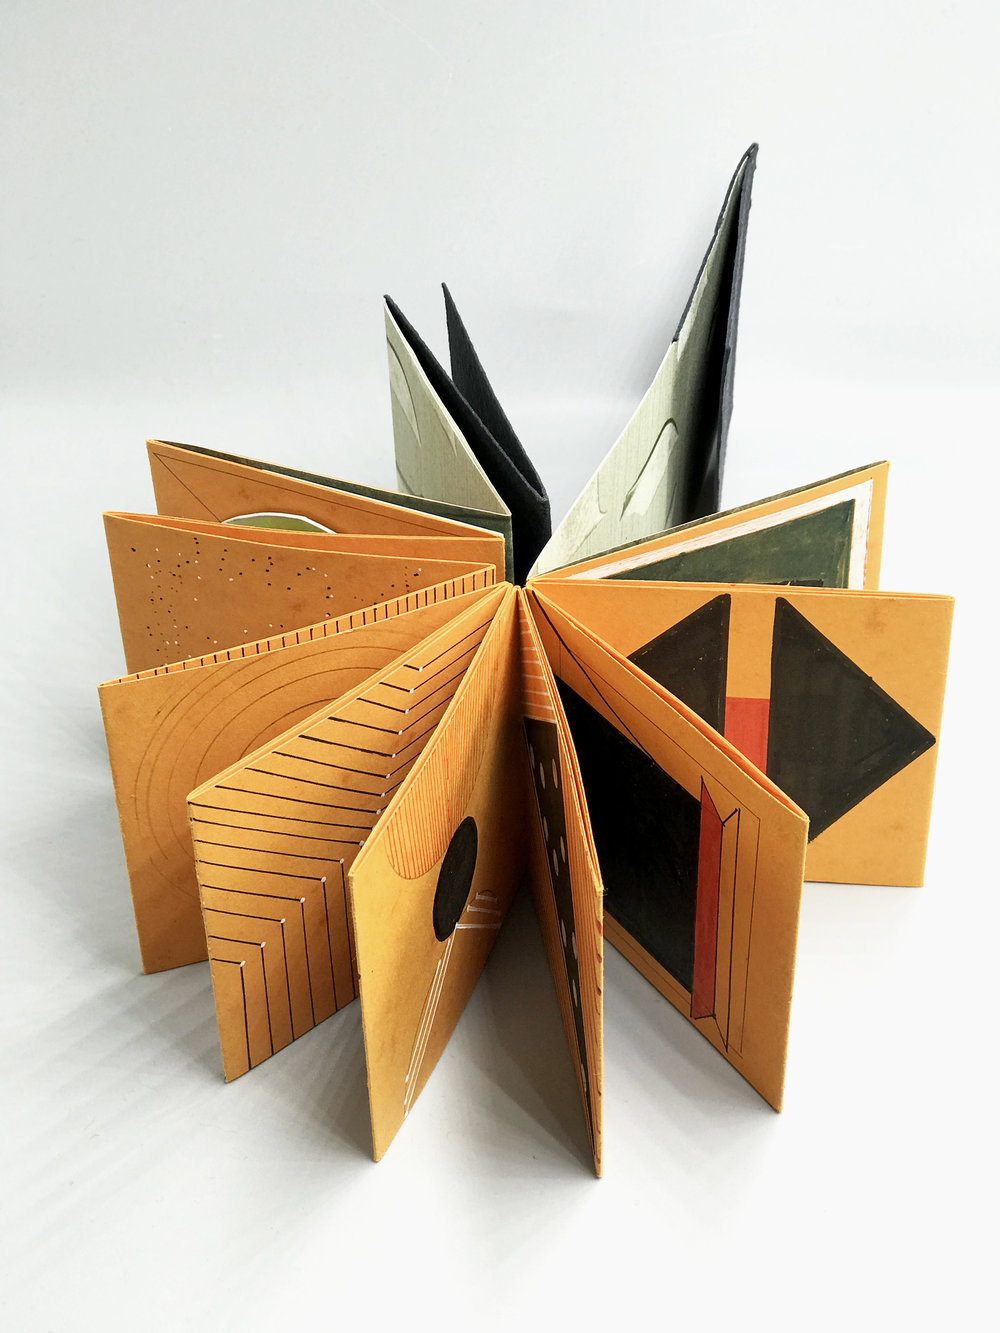 GEOMETRY BOOK I, Chang Liu, 152 X 75 mm, Artist's Book, 2018